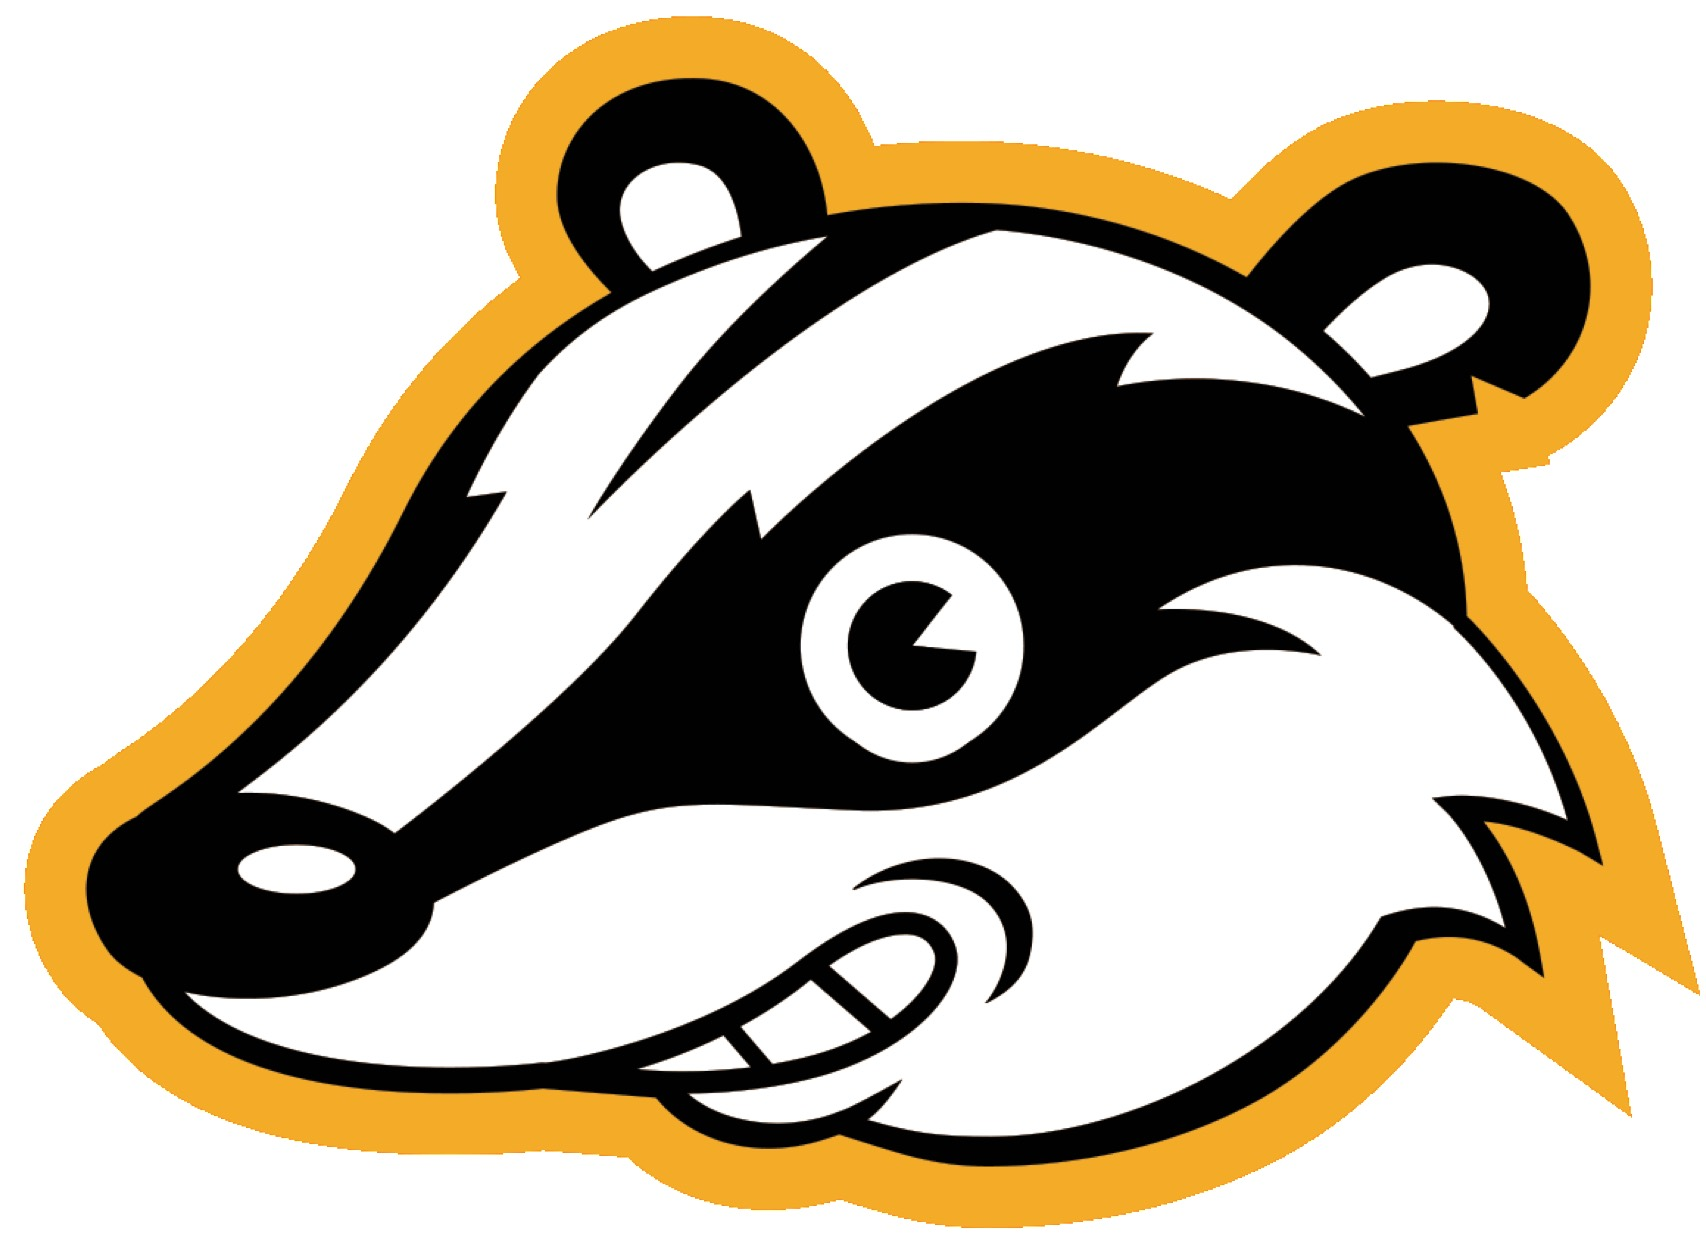 Badger-Stroke